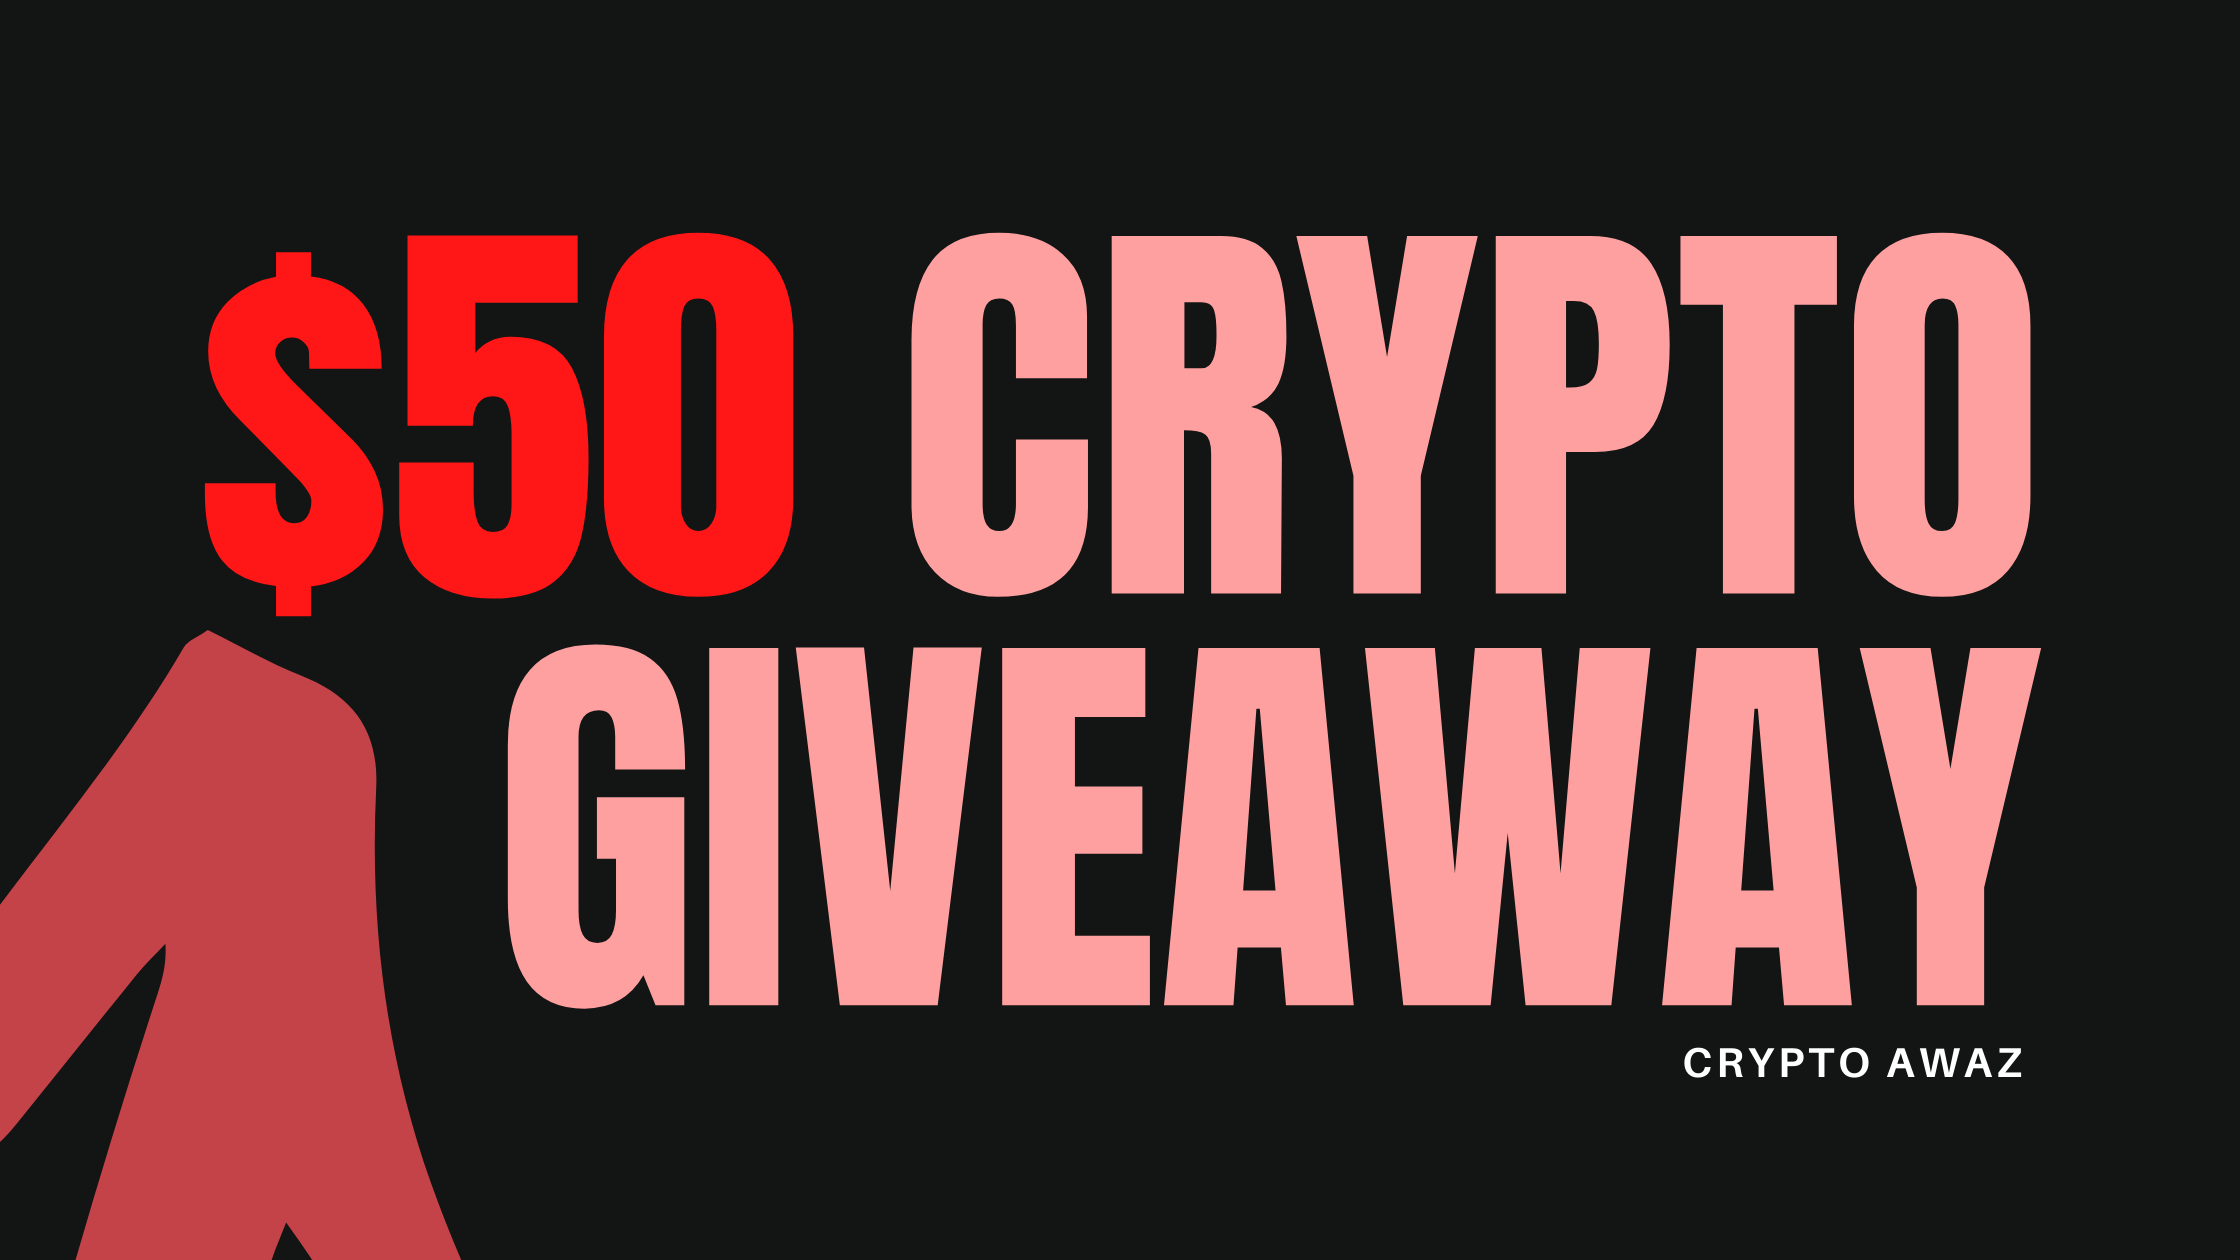 $50 Crypto Giveaway